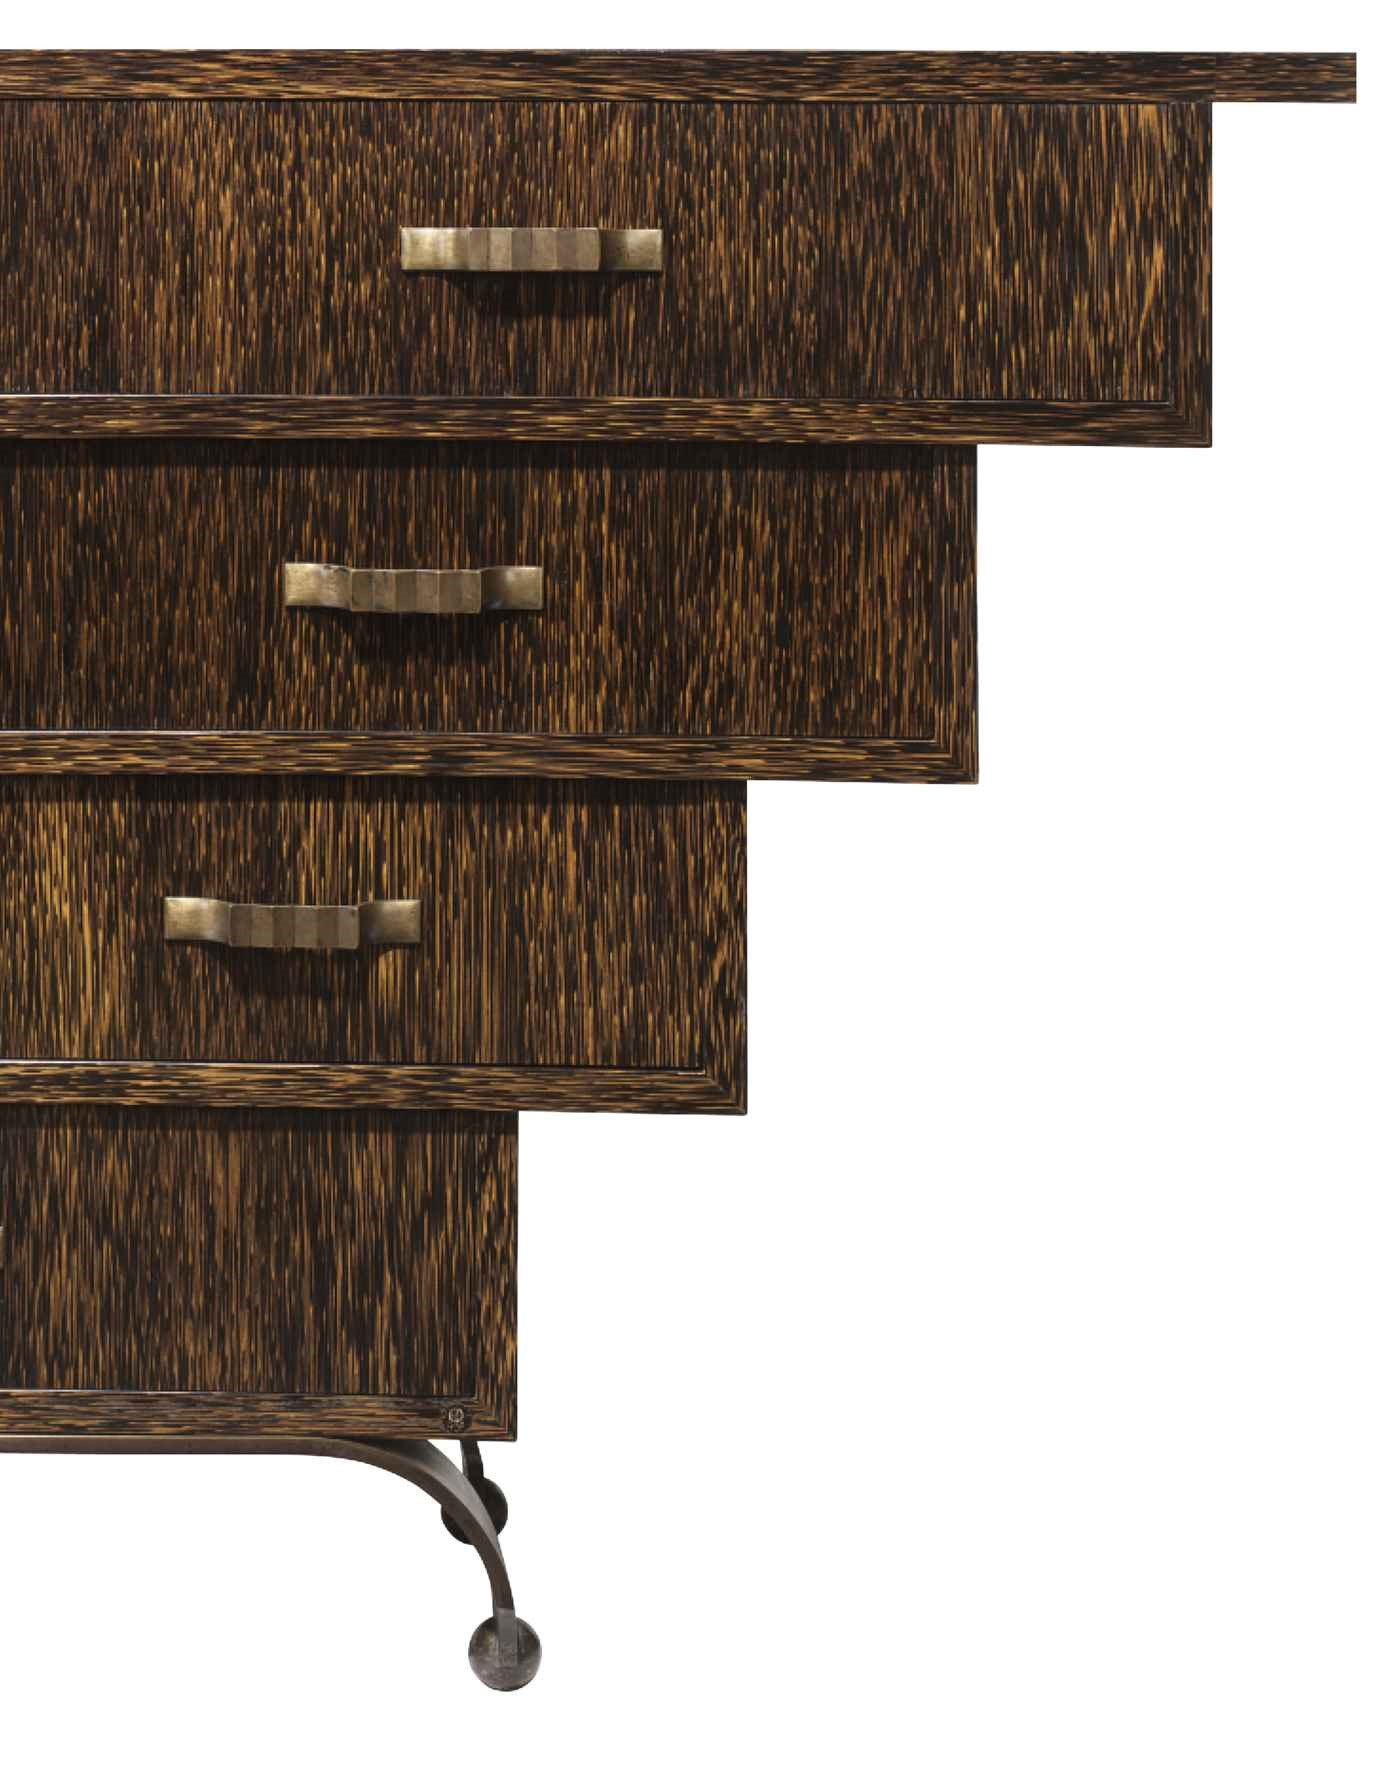 20/21 Design auction at Christies